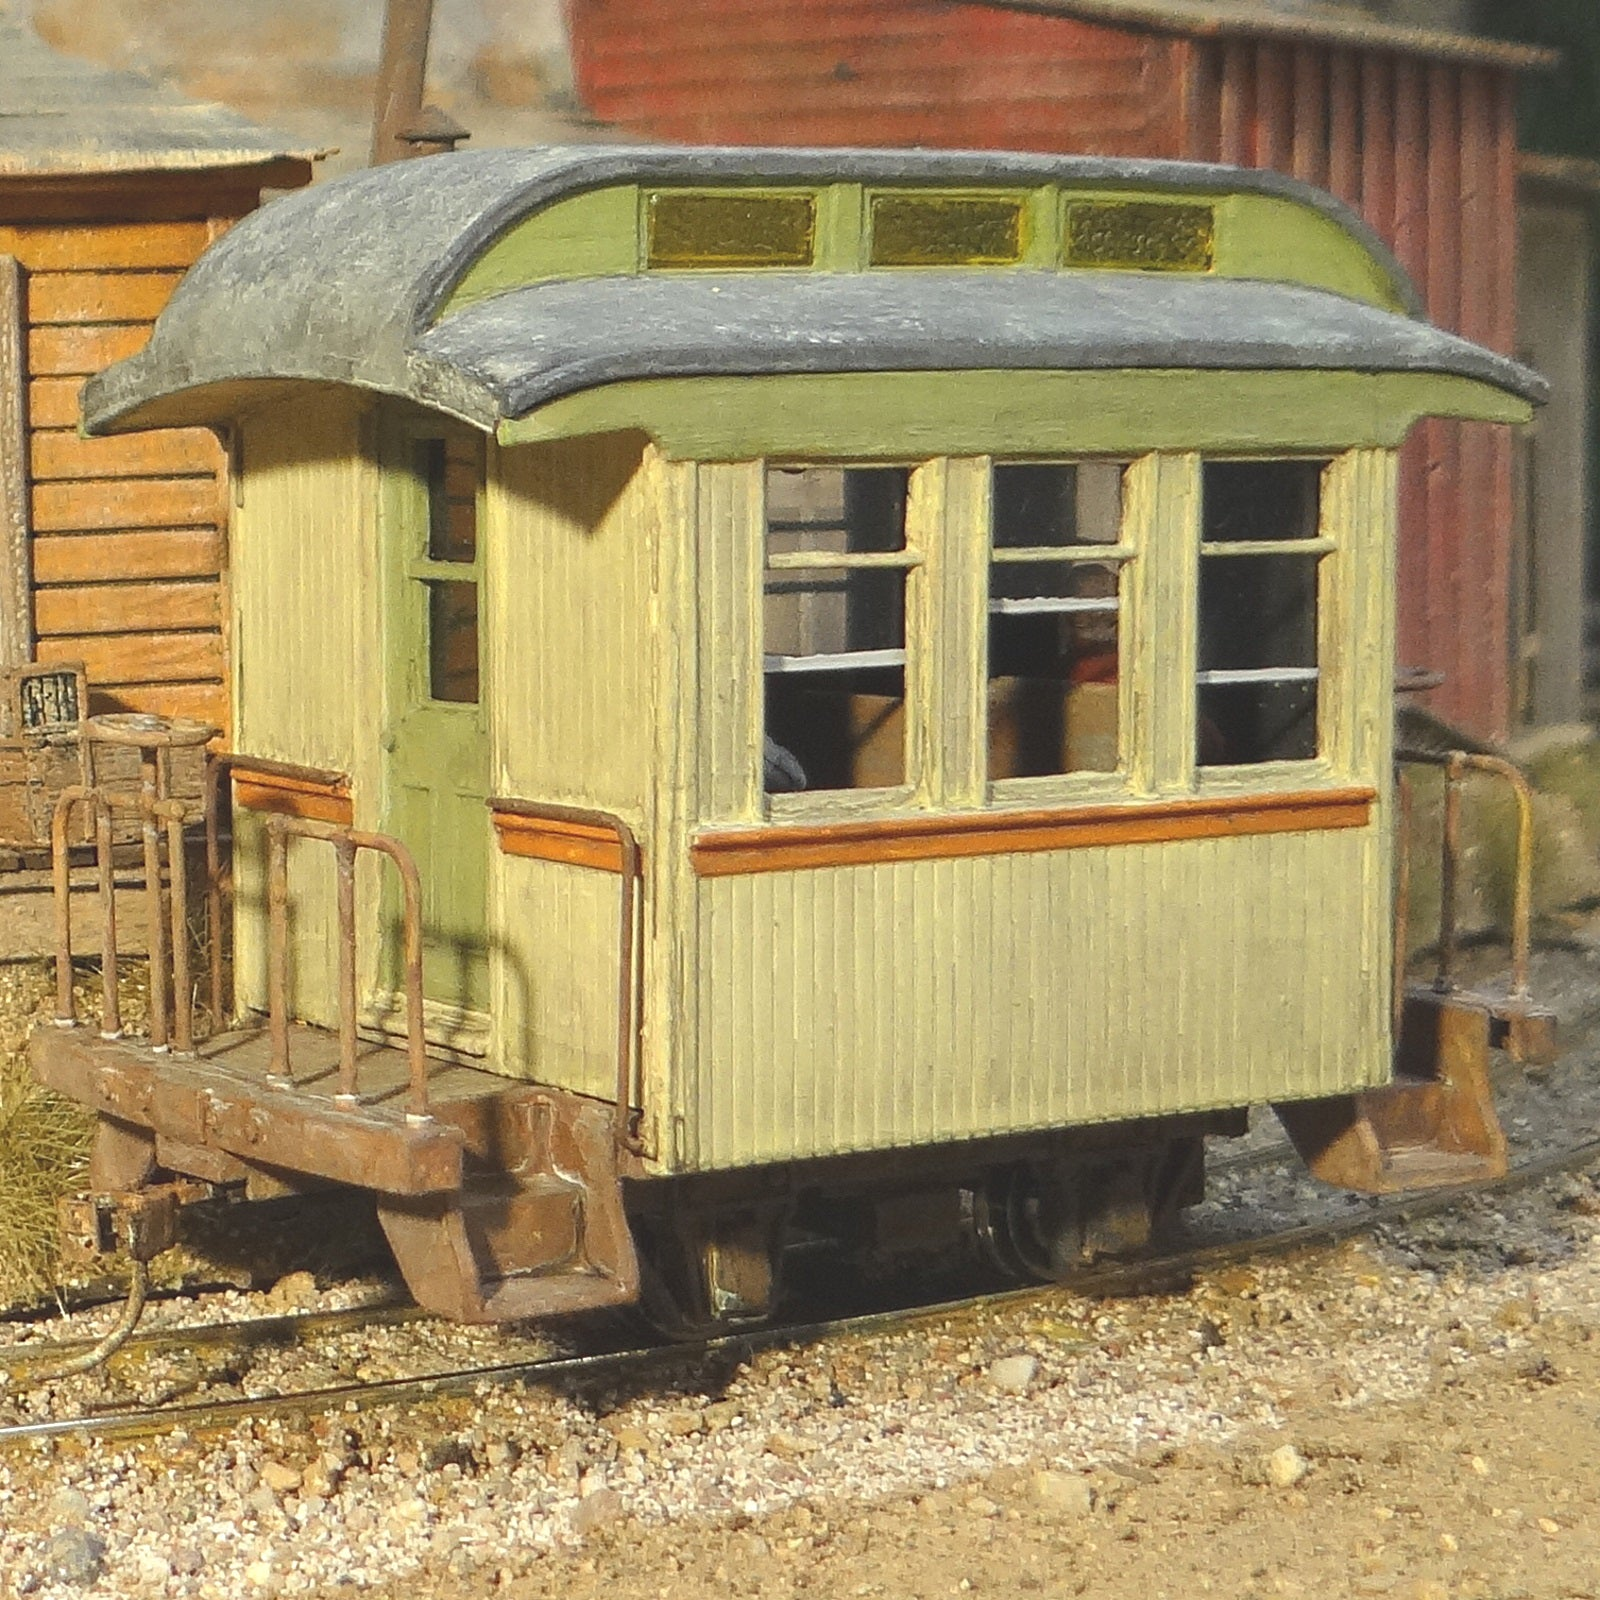 On30 Scale 14 Foot Shorty Custom Coach Car with Passengers